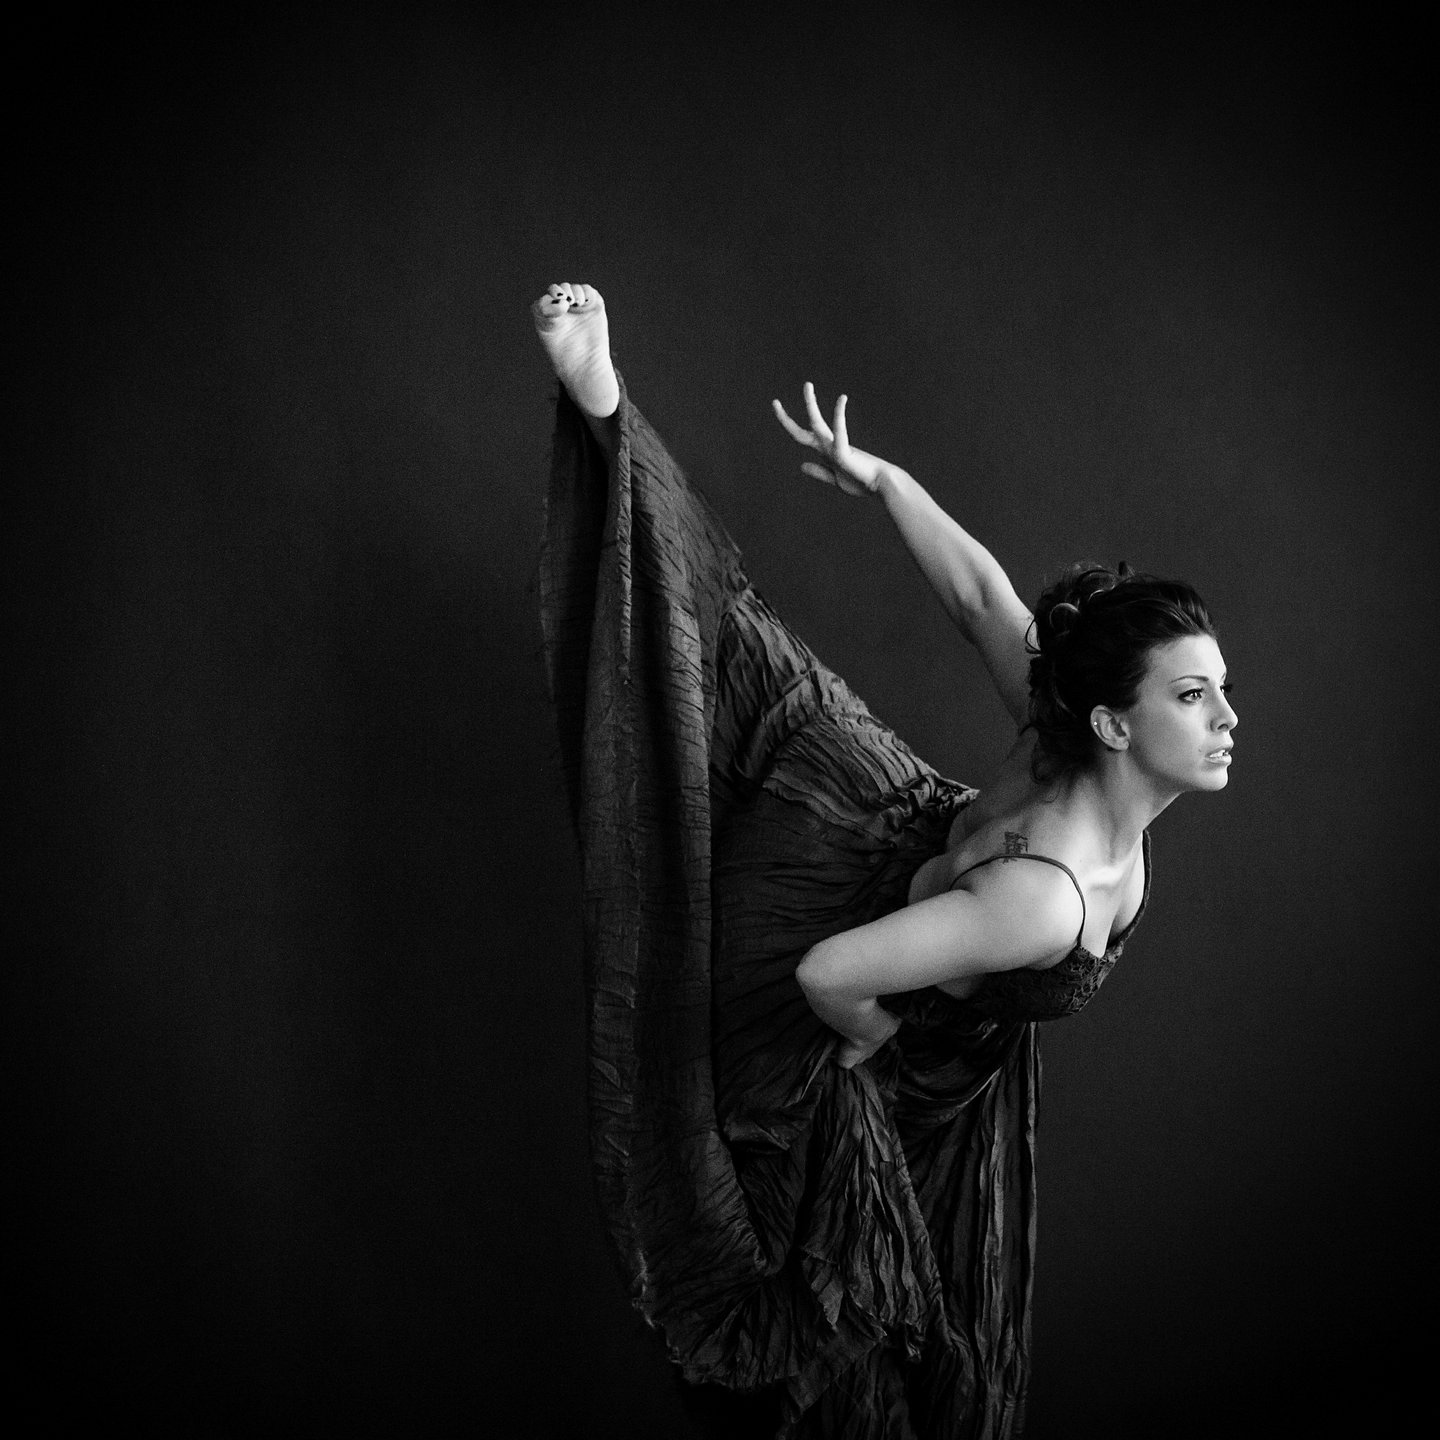 Los Angeles Dance Portrait Photo - Stephanie Abrams - by Tommy Xing Photography 12.jpg